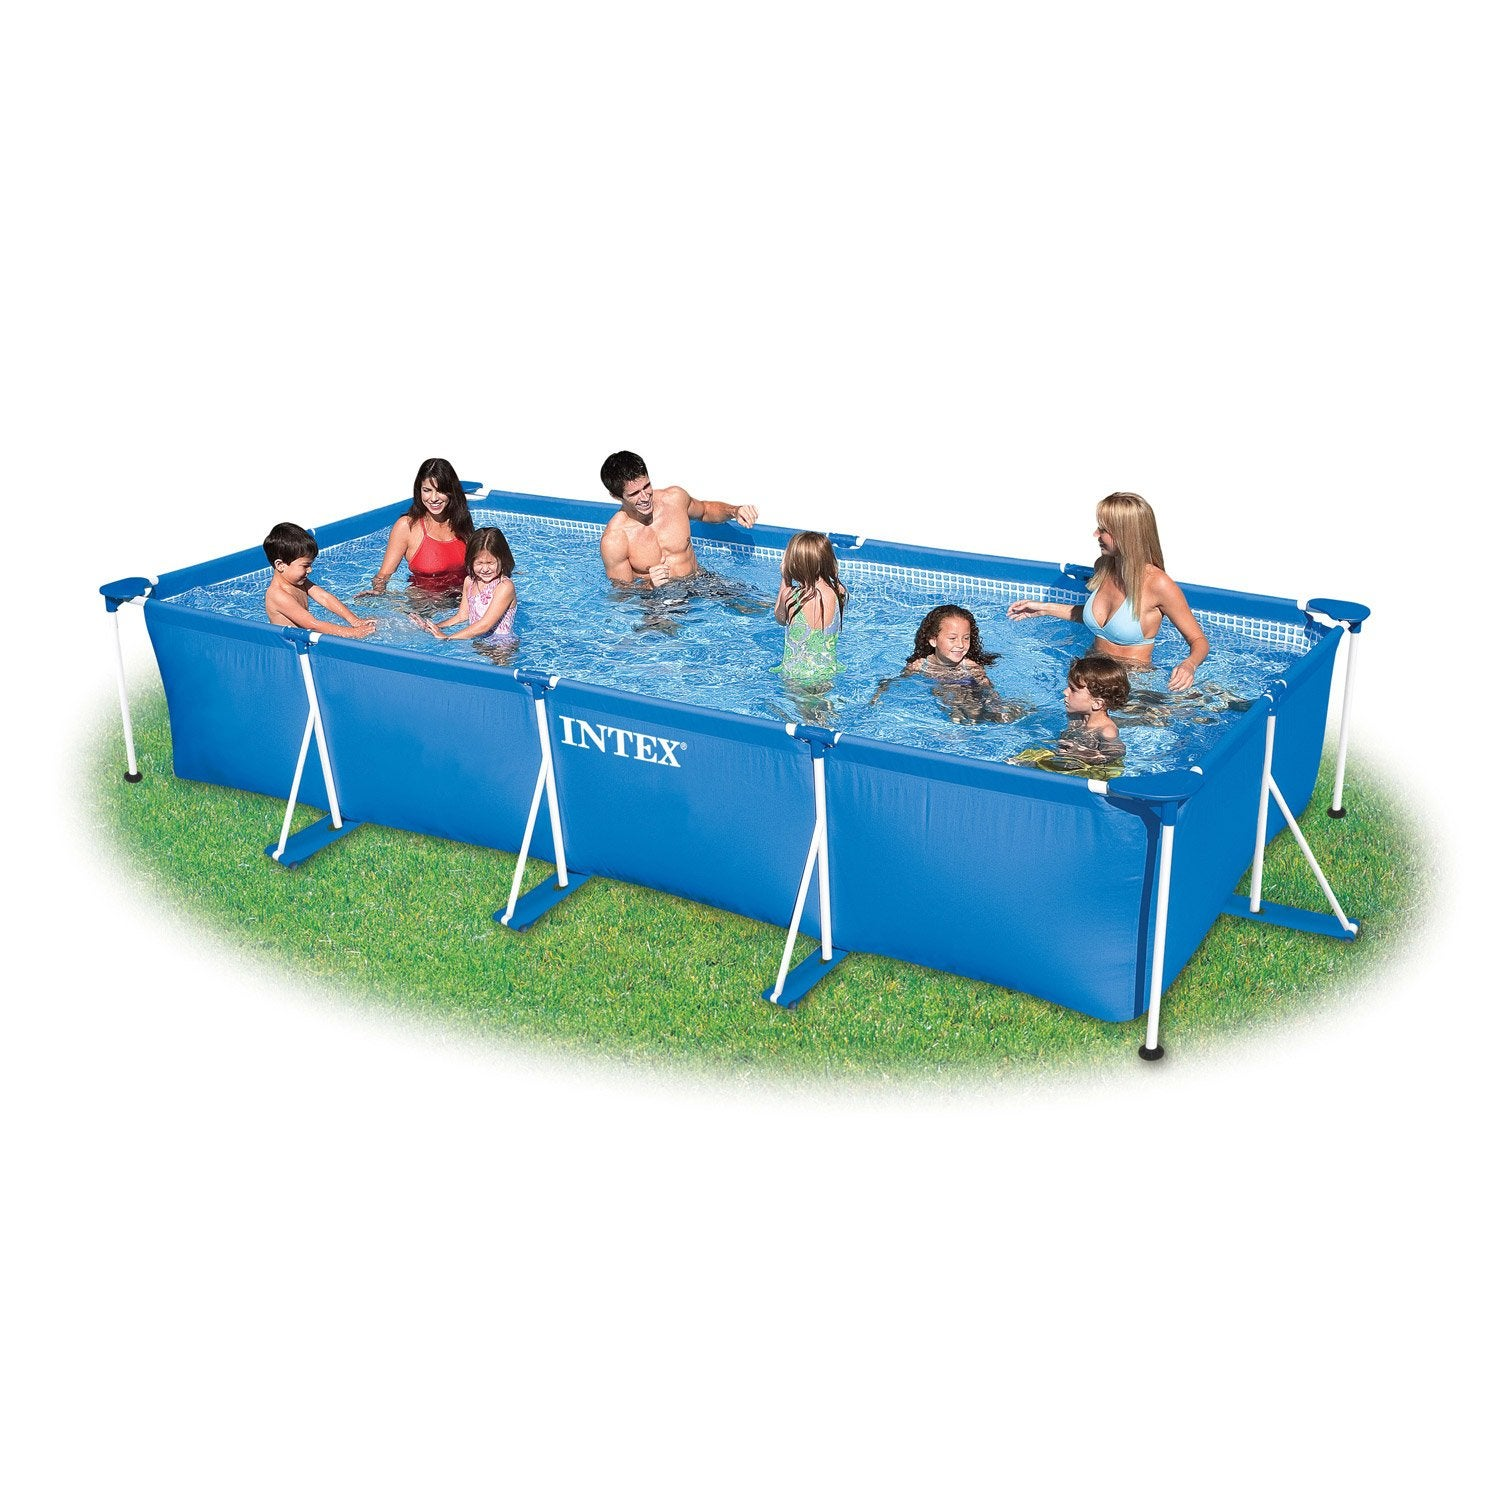 Piscine hors sol autoportante tubulaire intex l x l for Piscina autoportante